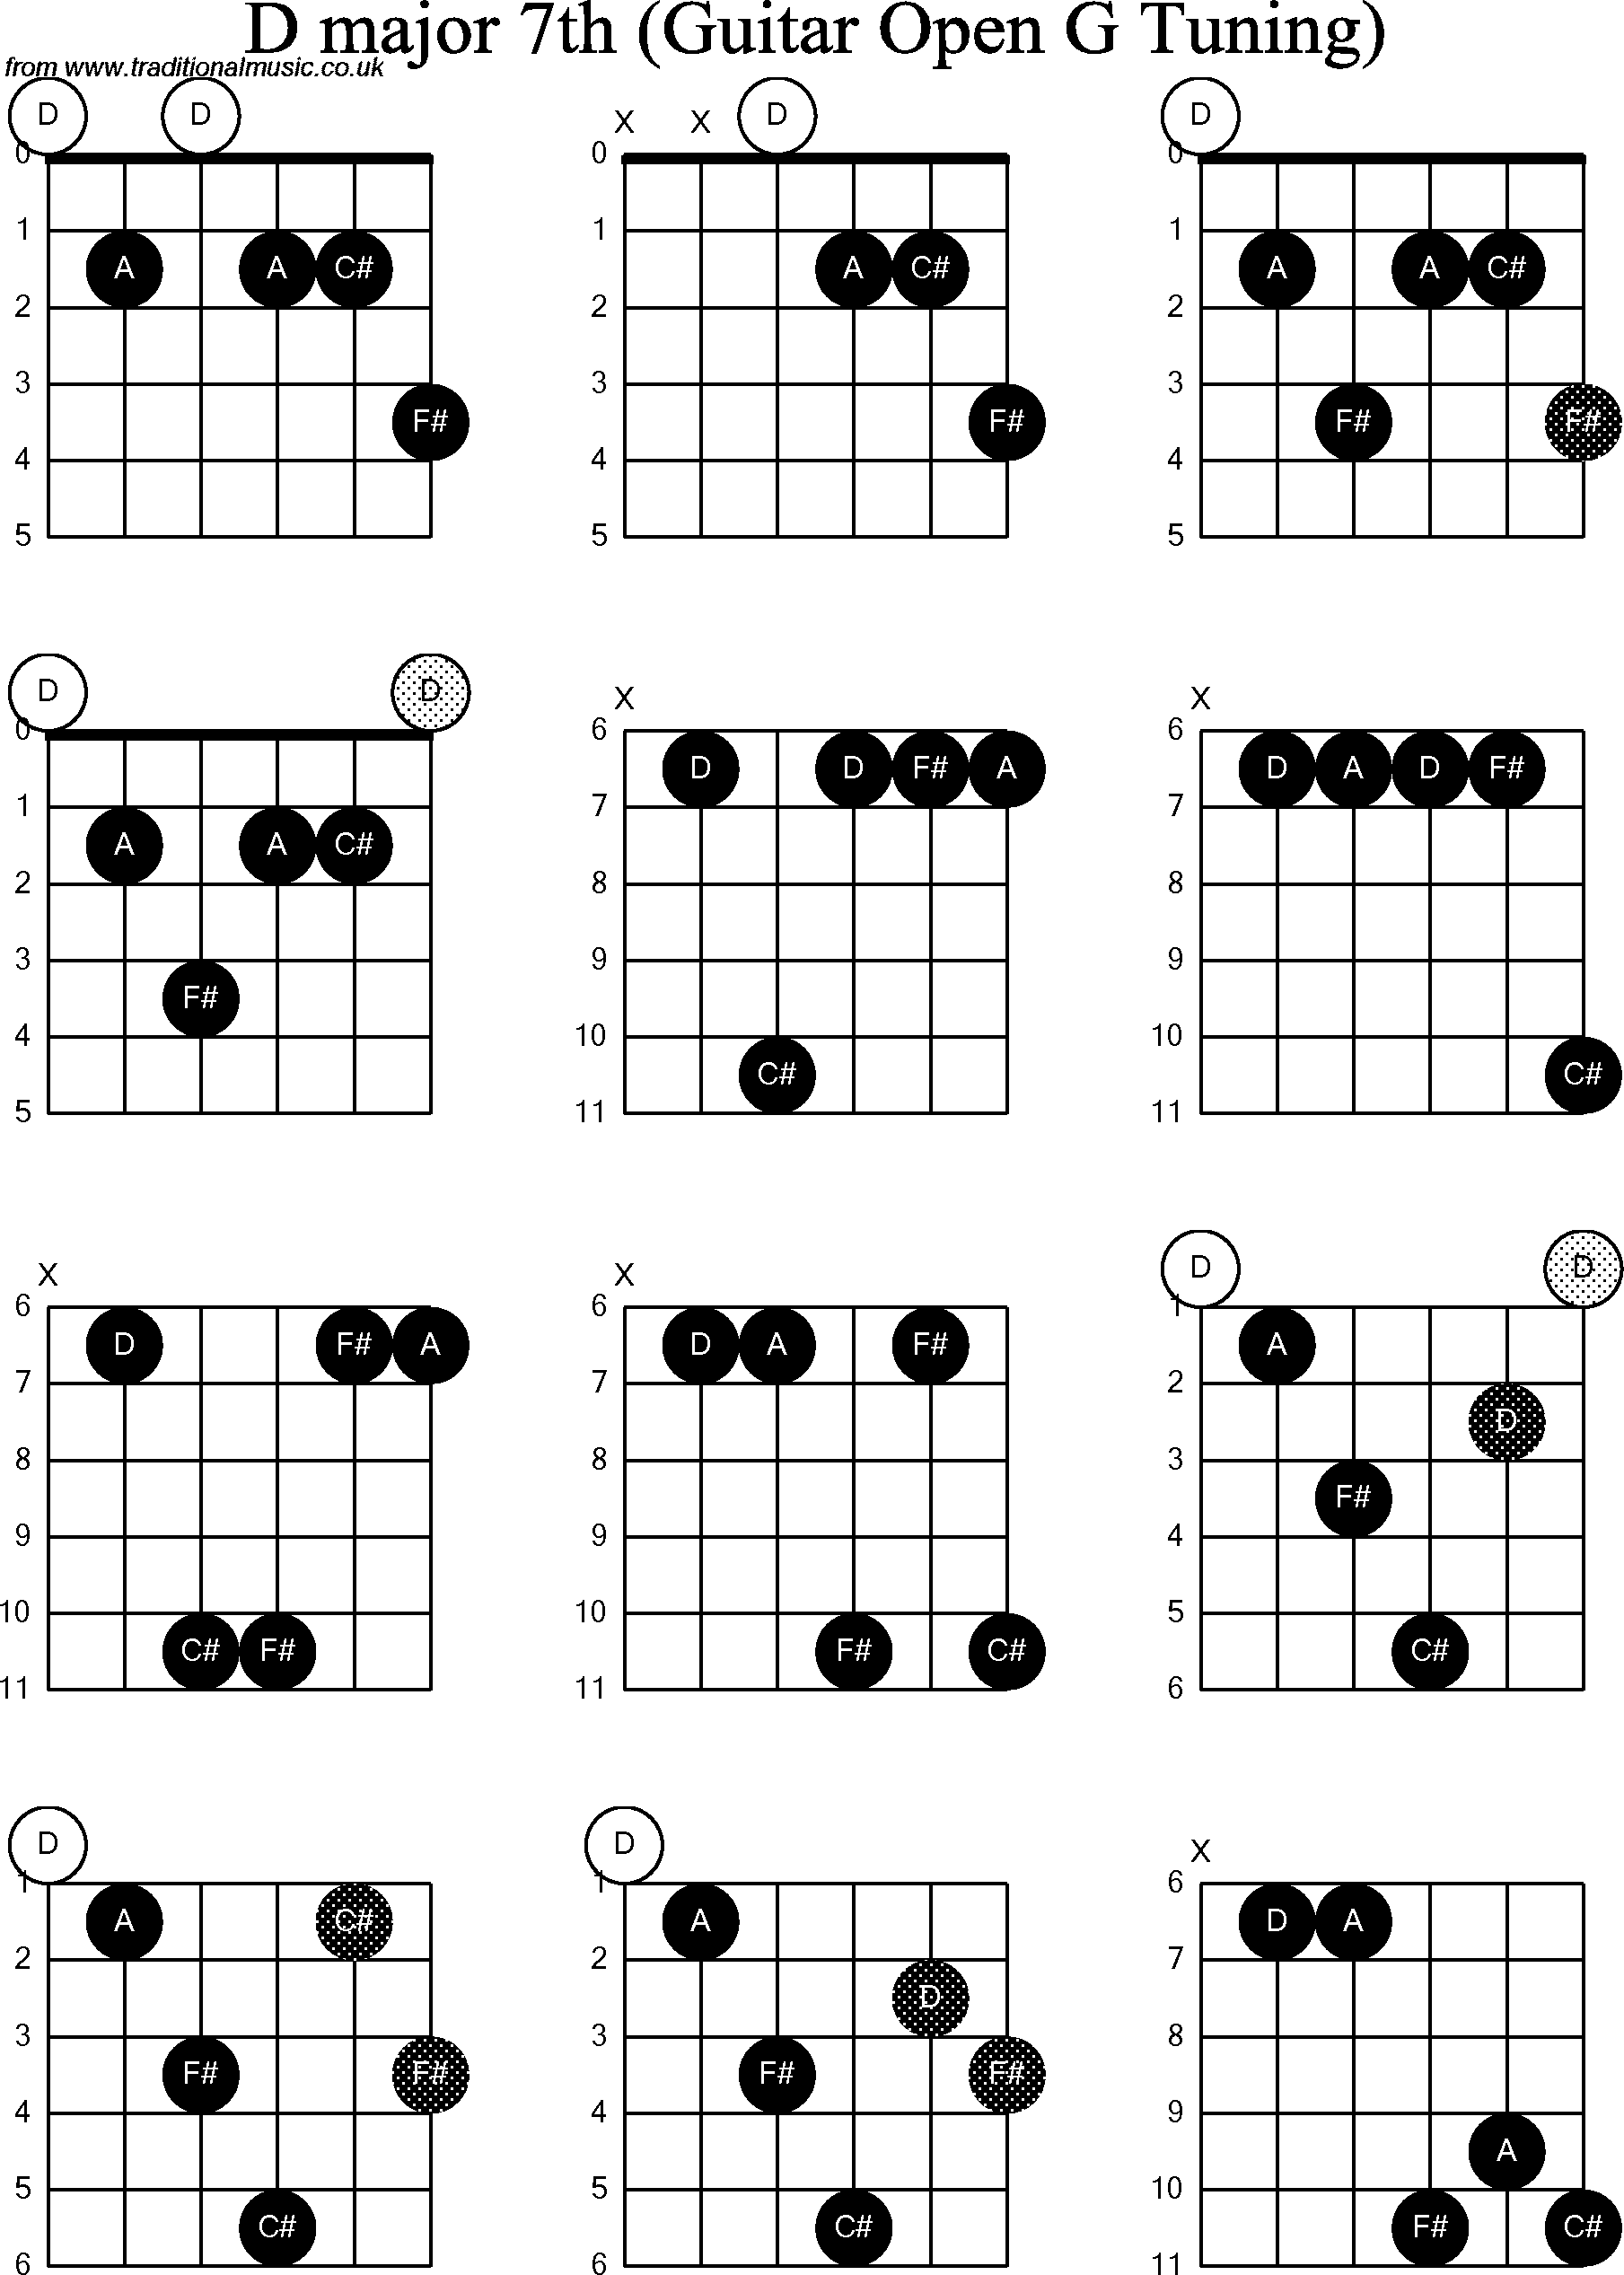 chord diagrams for  dobro d major7th